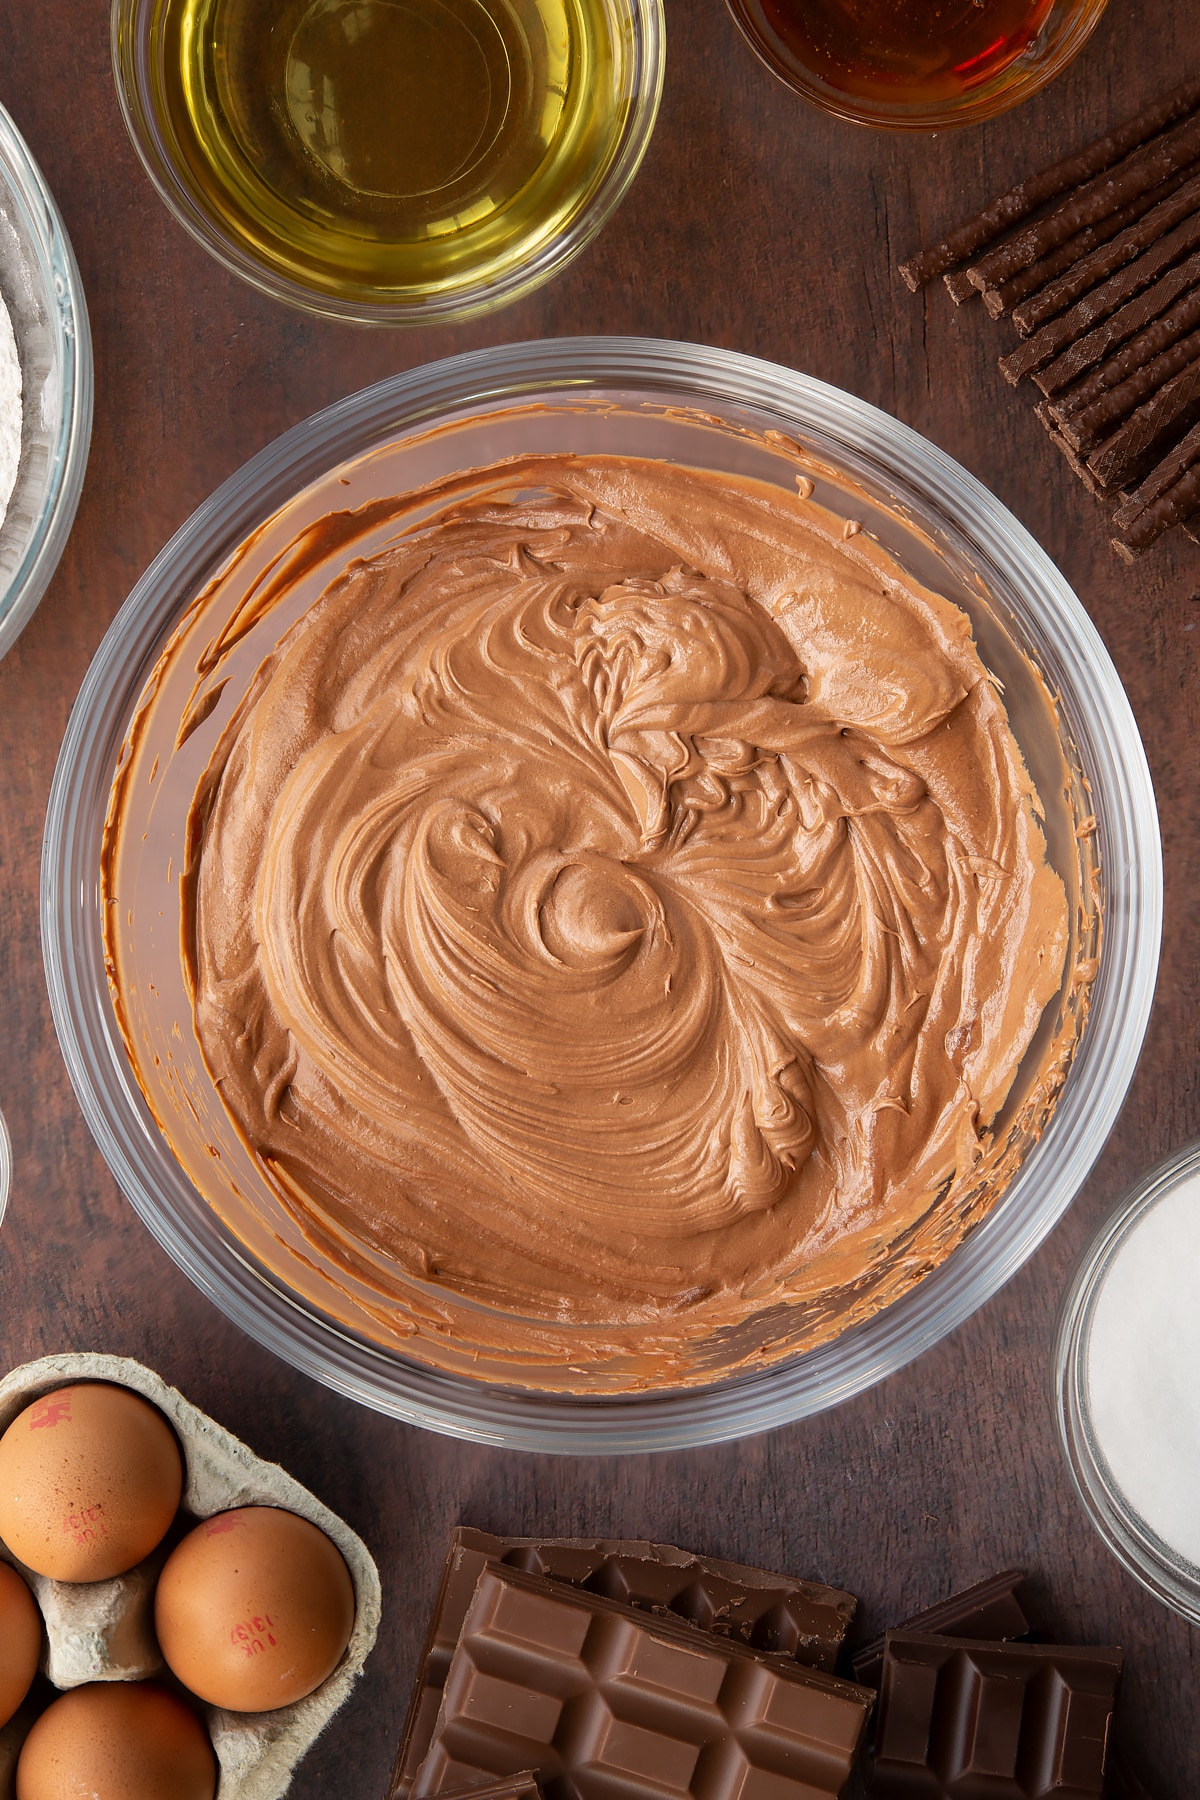 Whipped Matchmaker ganache in a glass mixing bowl. Ingredients to make Matchmaker cake surround the bowl.